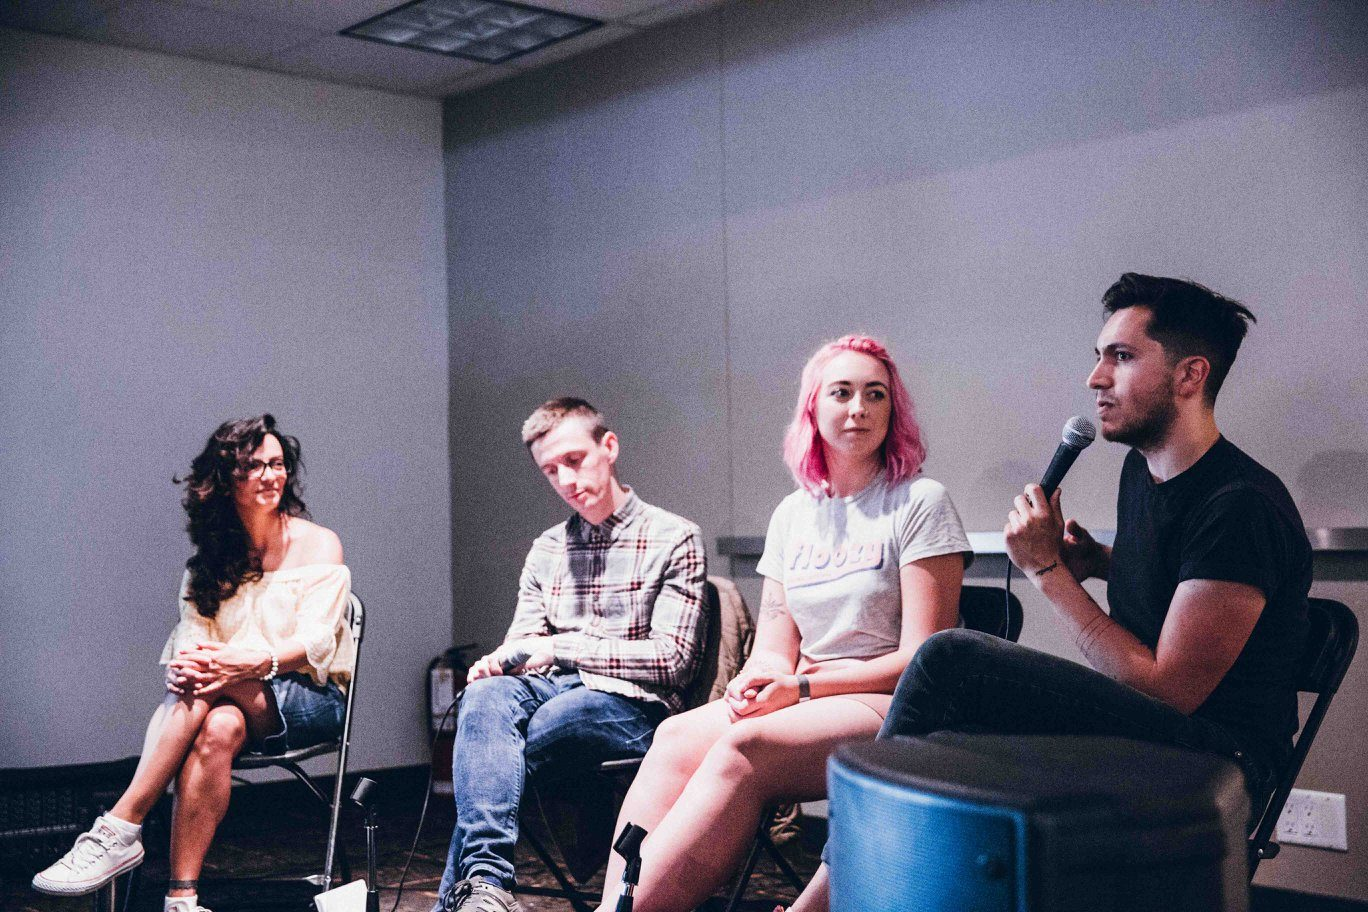 'How to Have a Career in Coffee' - a panel discussion at Beanstock Coffee Festival 2018 featuring Kat of Boxcar Social, Ben of Monogram Coffee, Cill from Floozy and Chris Tellez. Photo @bheathertownsend